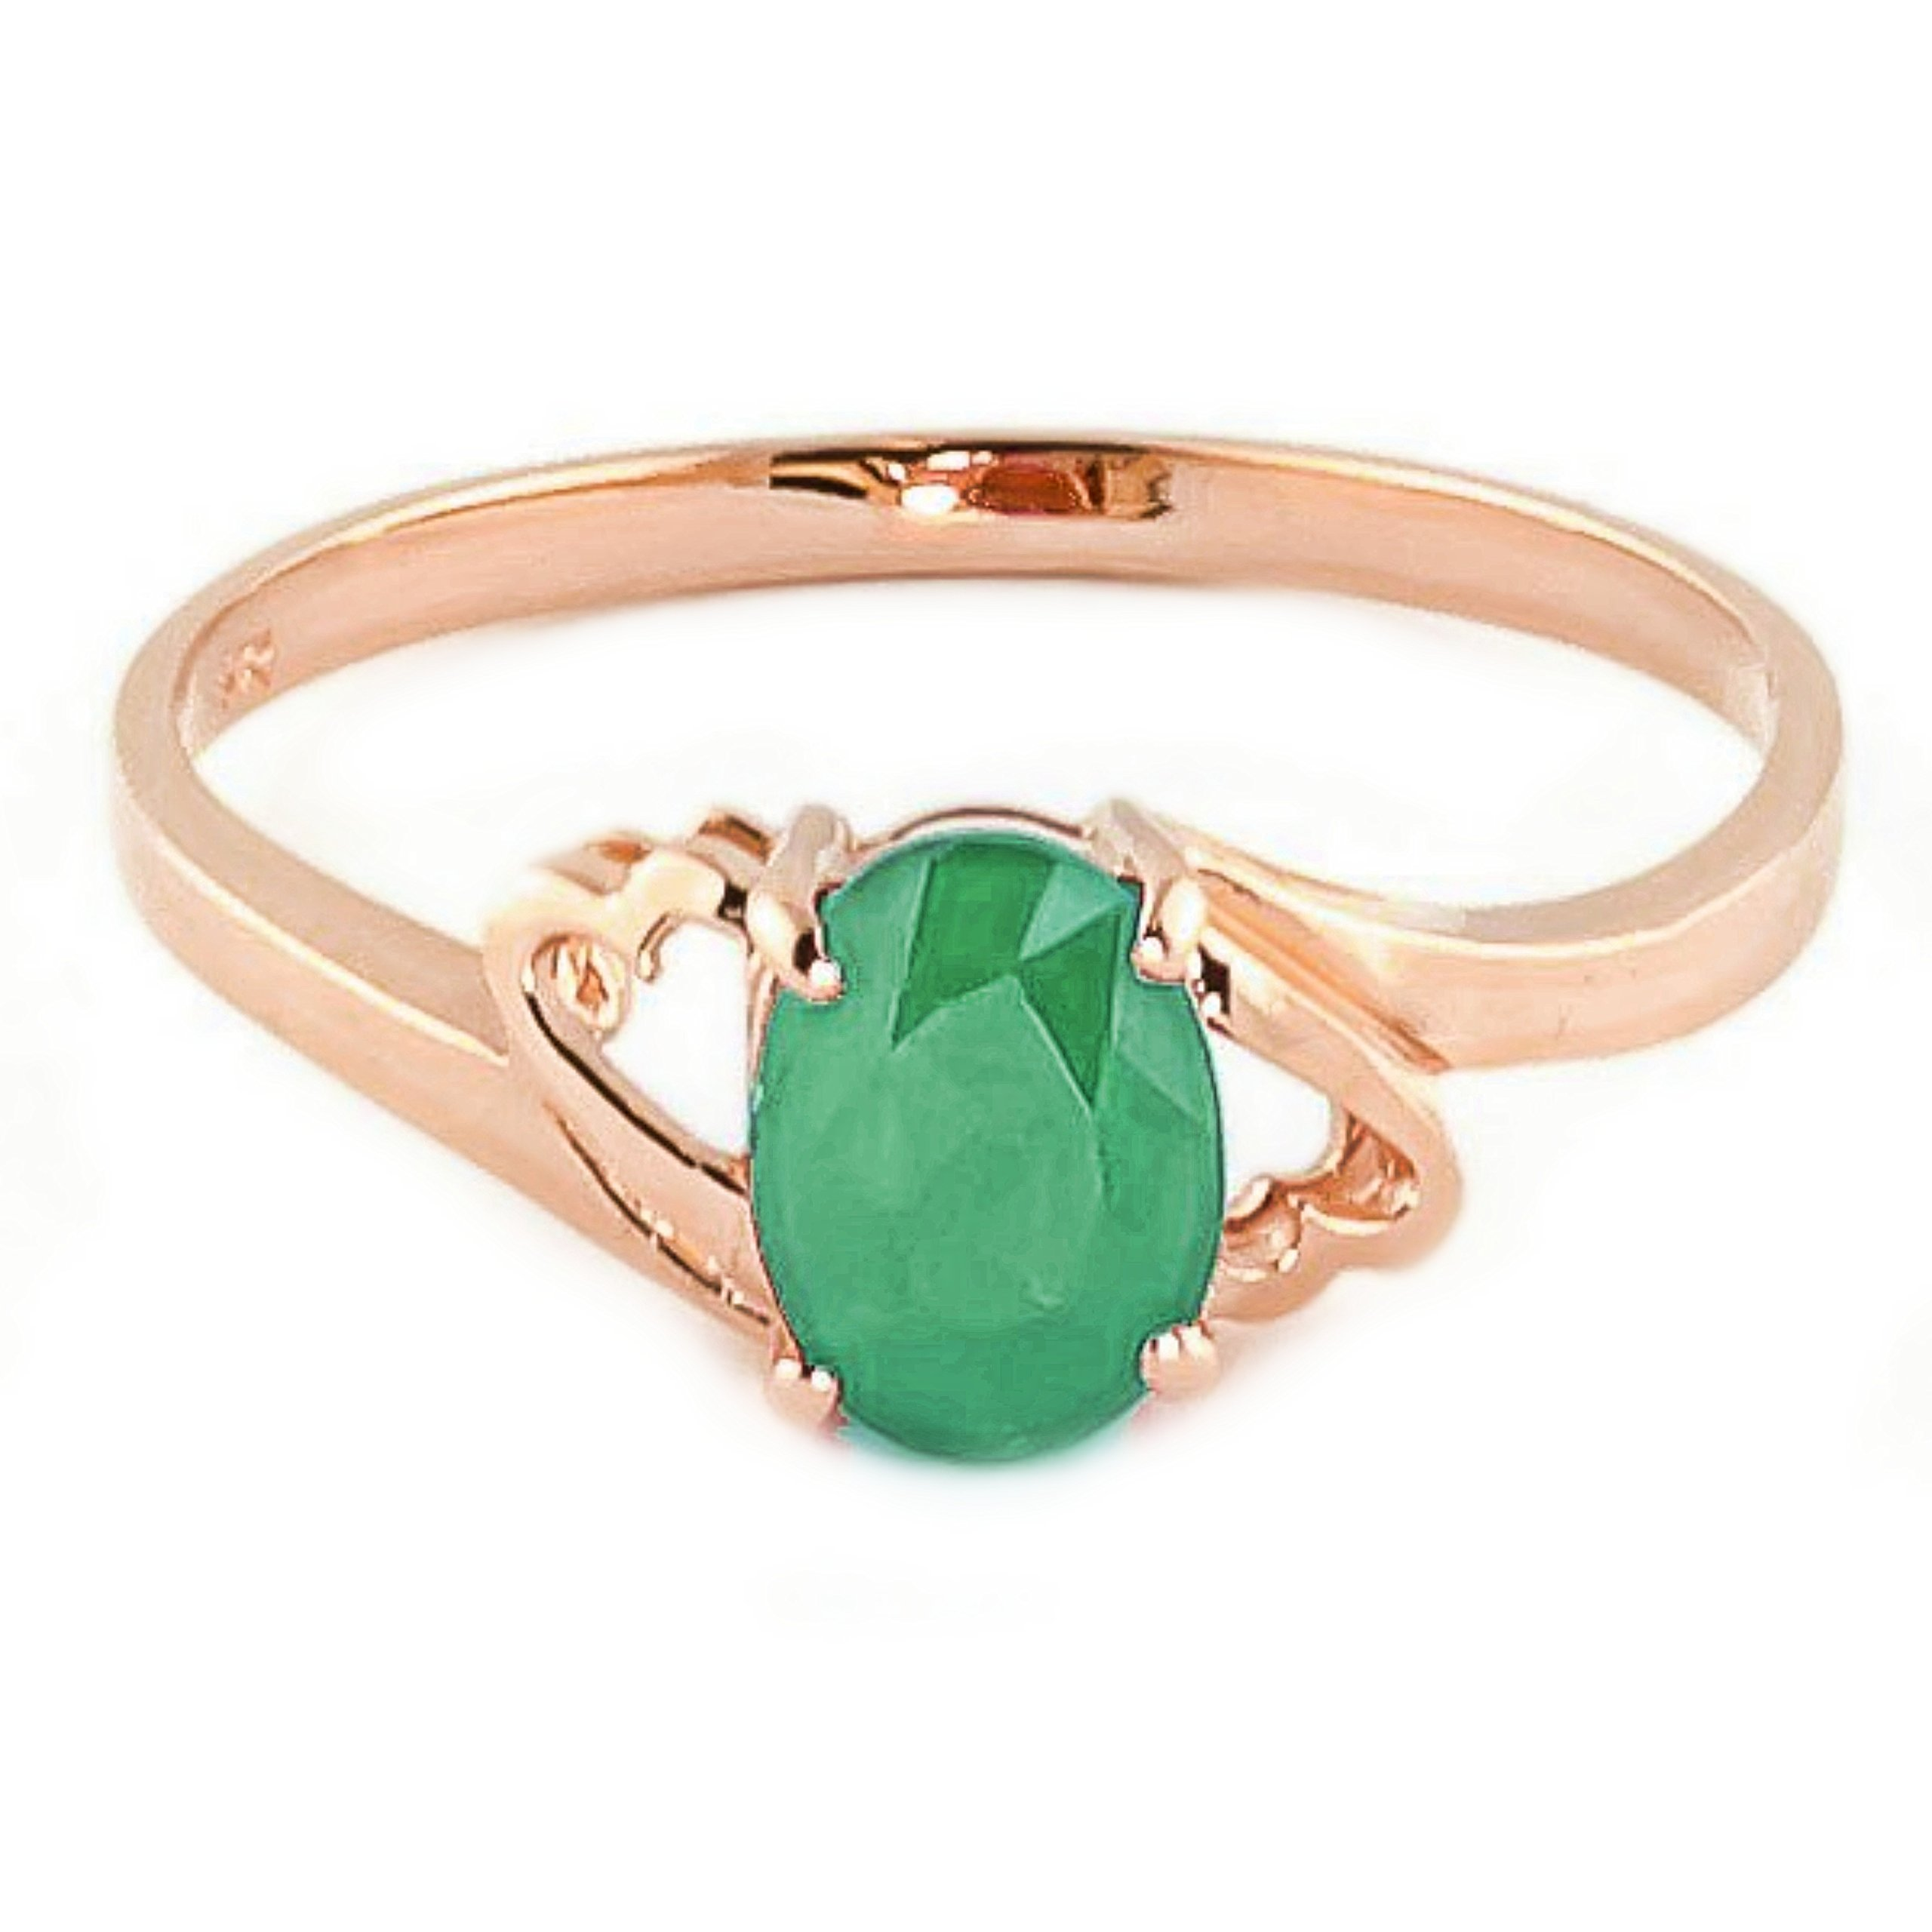 Galaxy Gold 14k Rose Gold Natural Emerald Ring - Size 10.5